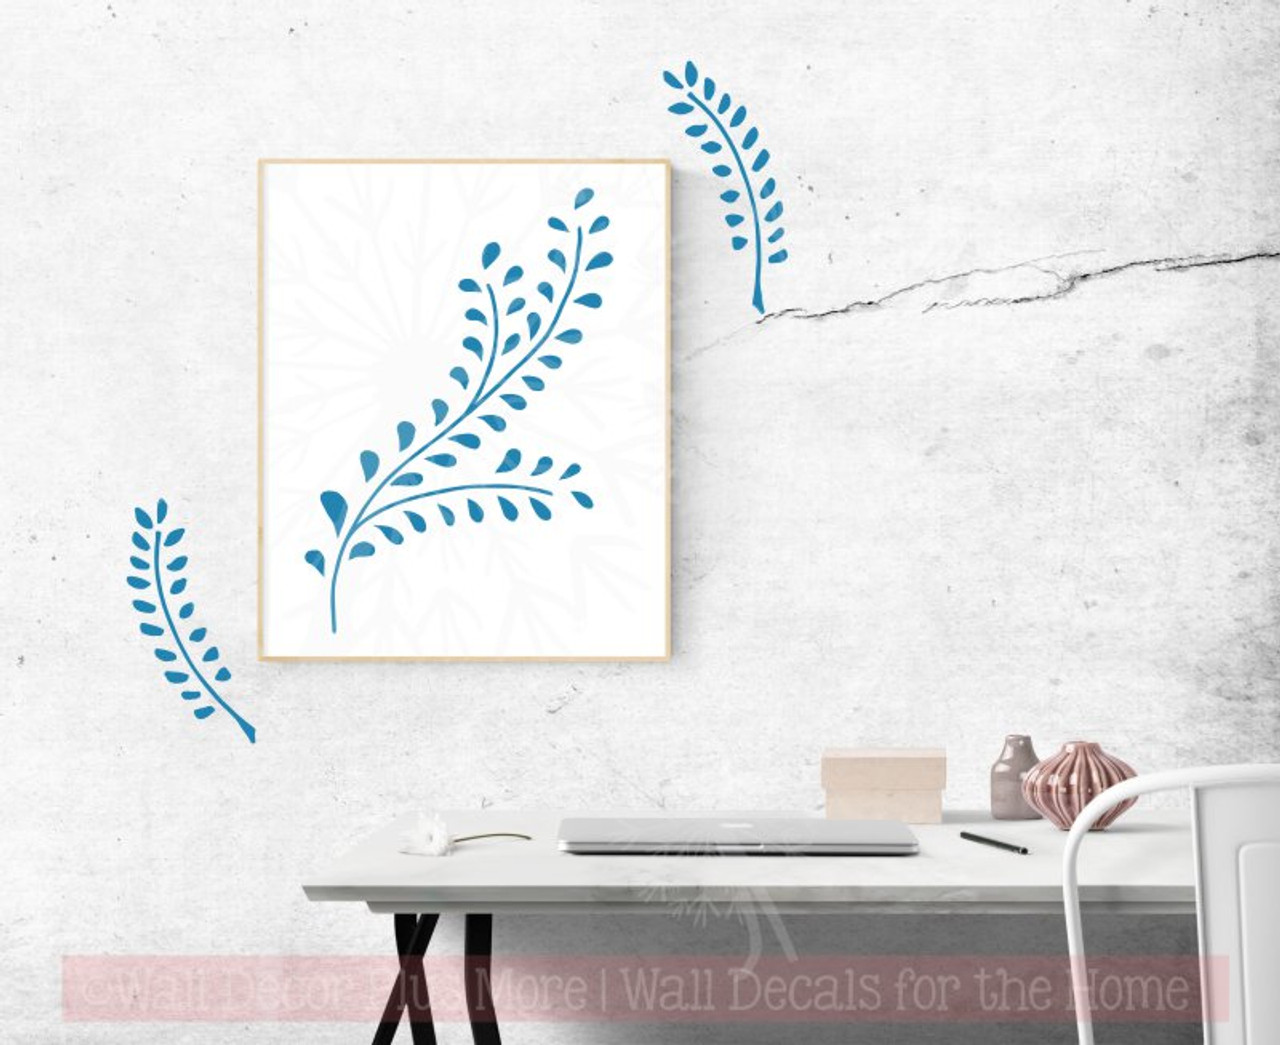 Laurel Leaf Branch Wall Decals Flower Vinyl Art Stickers for Modern Decor  sc 1 st  Wall Decor Plus More & Laurel Leaf Branch Wall Decals Flower Vinyl Art Stickers for Modern ...